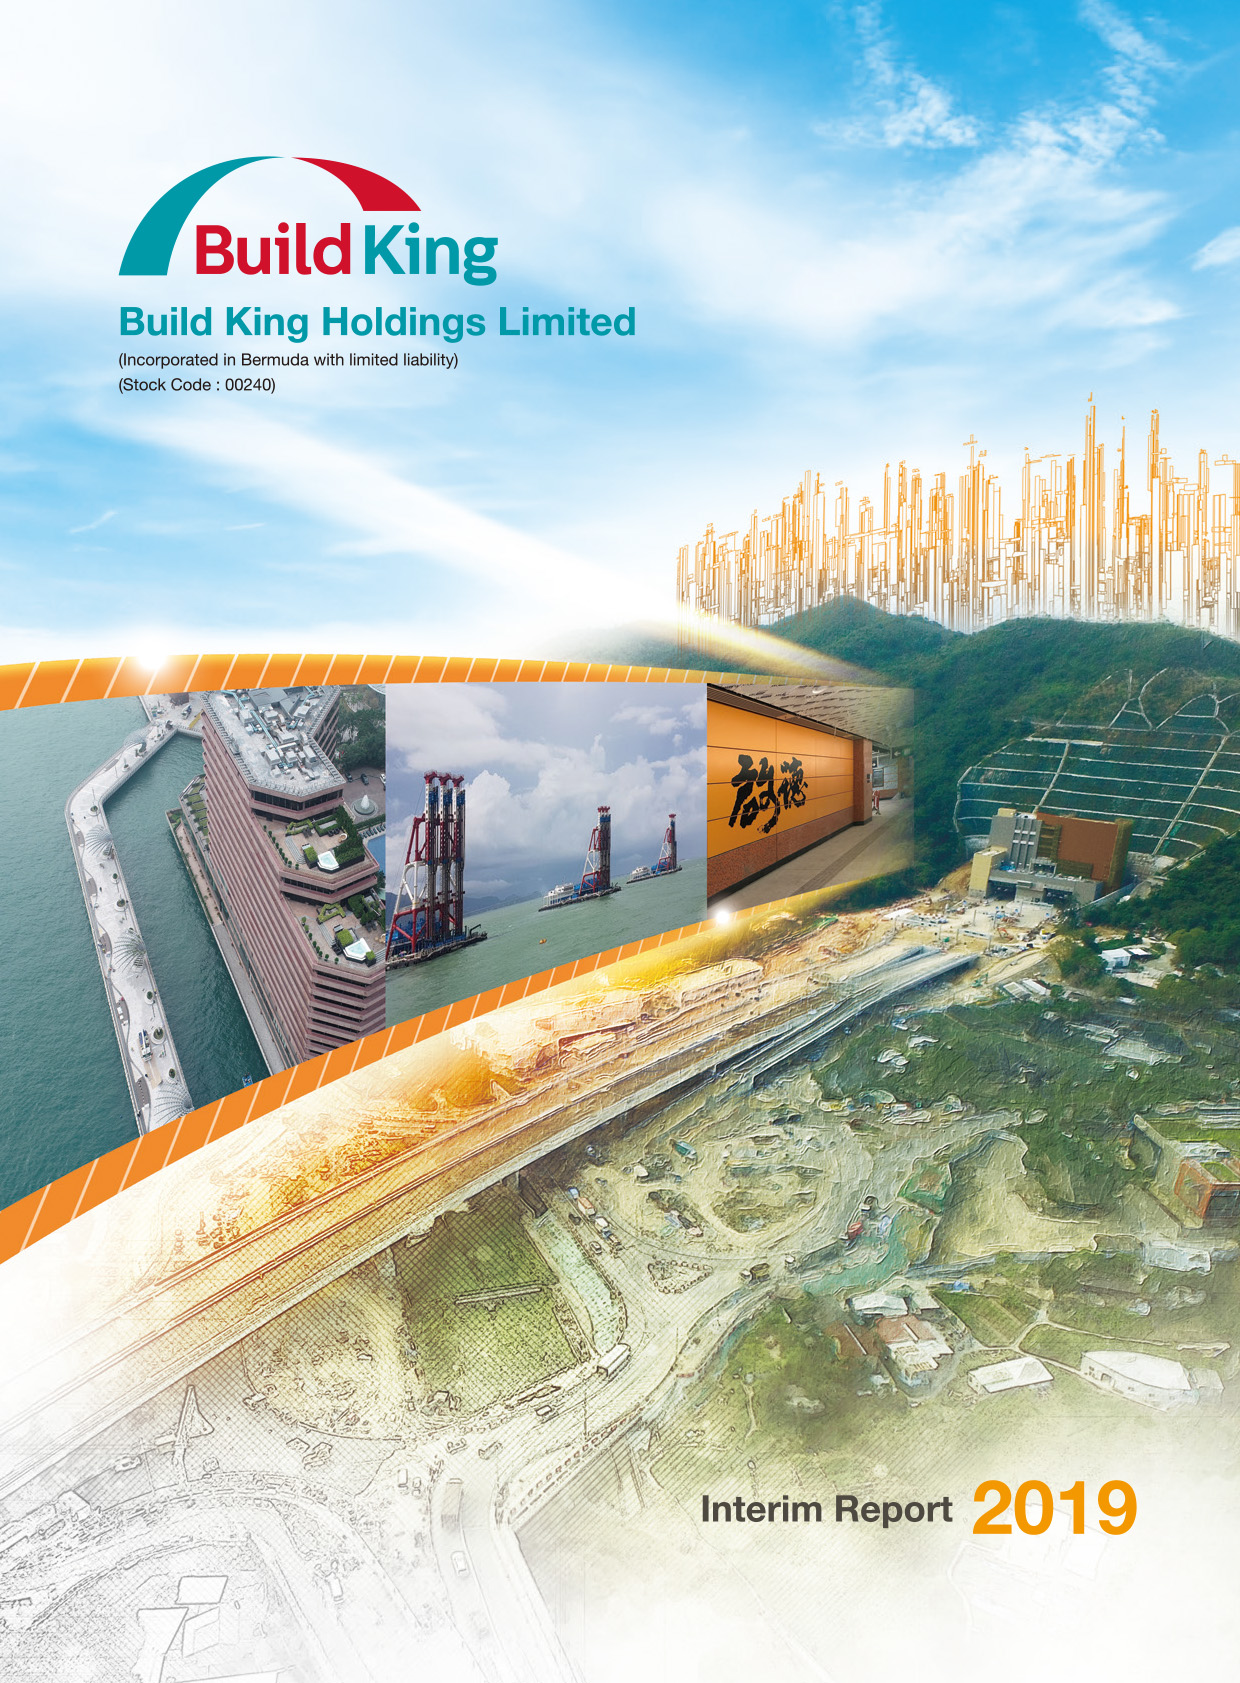 Build King Holdings Limited